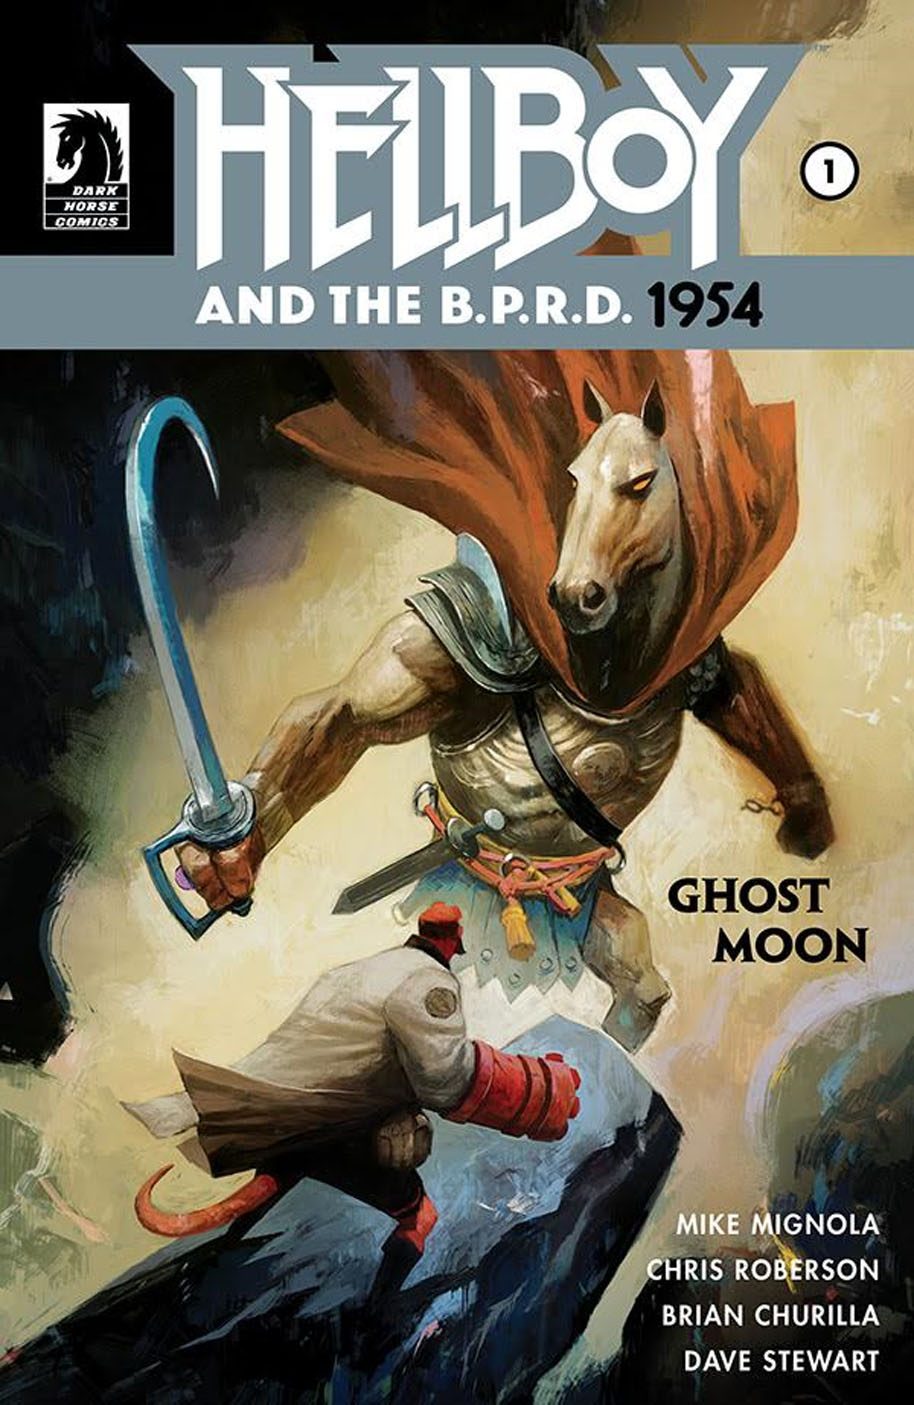 Hellboy and BPRD 1954 1 cover